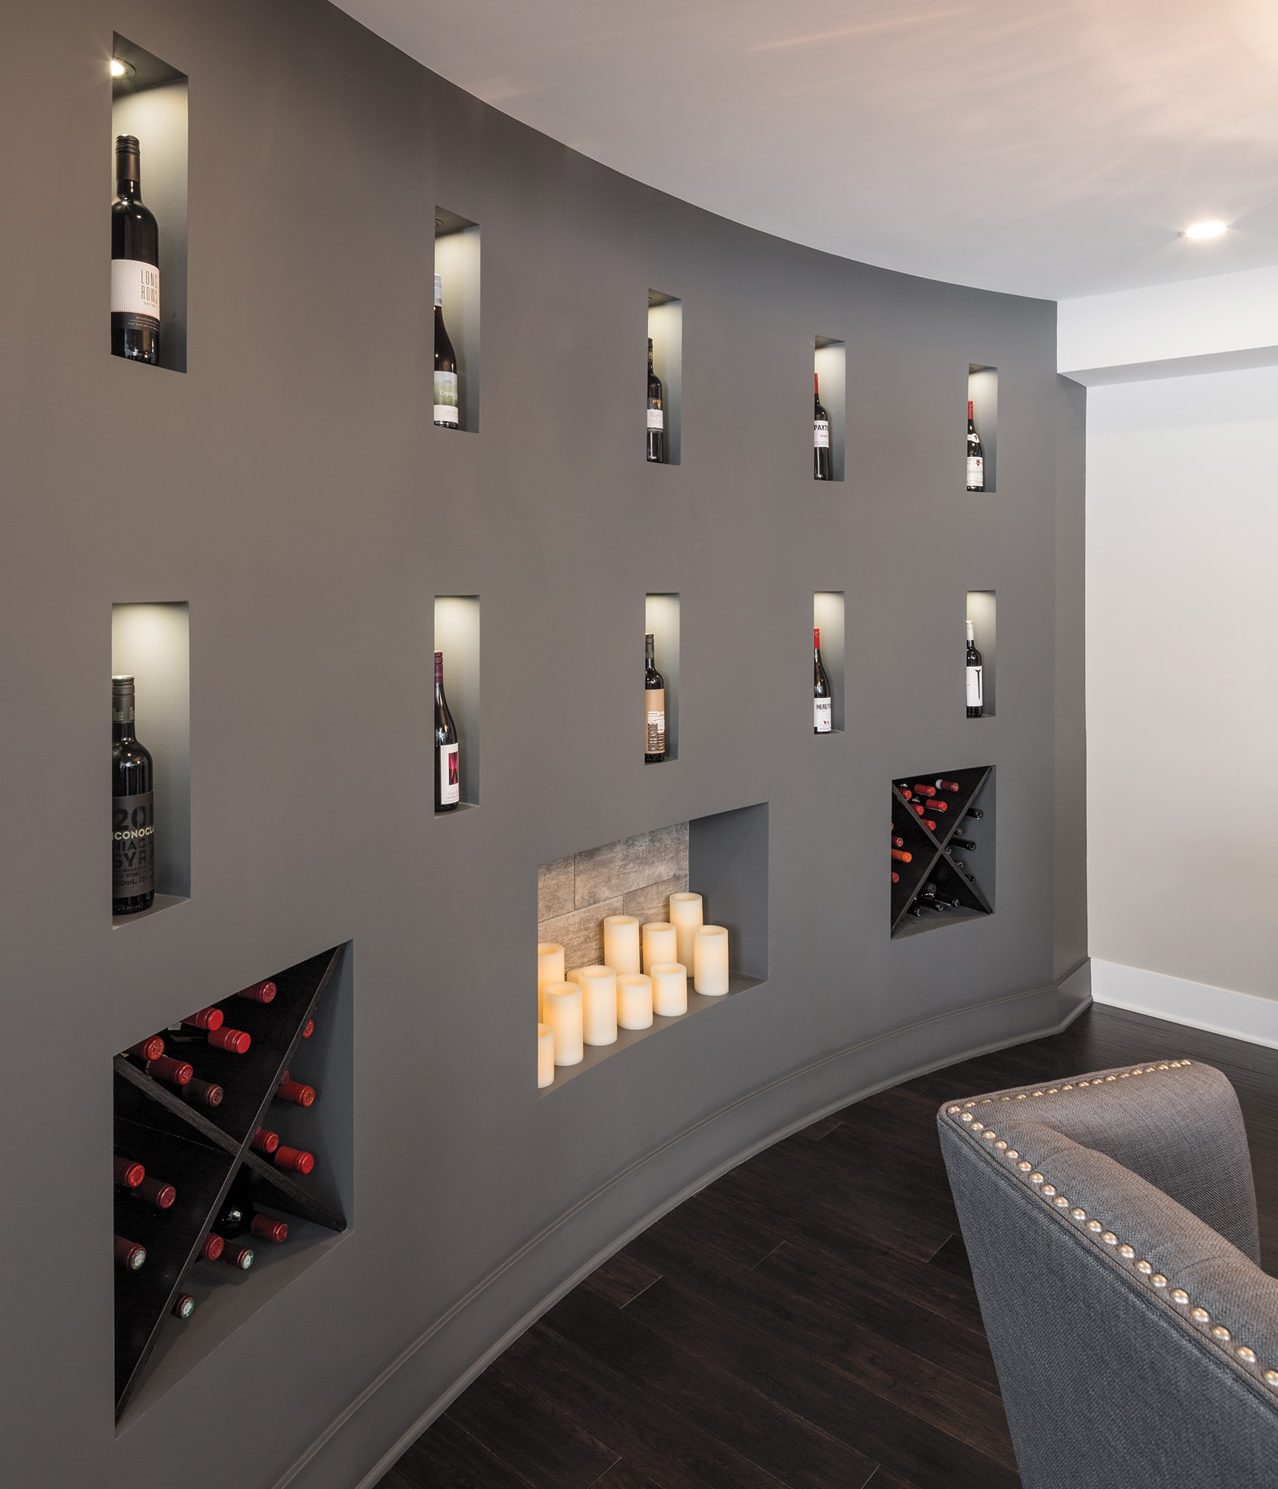 Ten identical niches are lit with LED lights so as not to overheat the wine. The grey palette, in concert with the wood-grained tile in the niches, reminds the owners of Tuscany. Photo: Justin Van Leeuwen